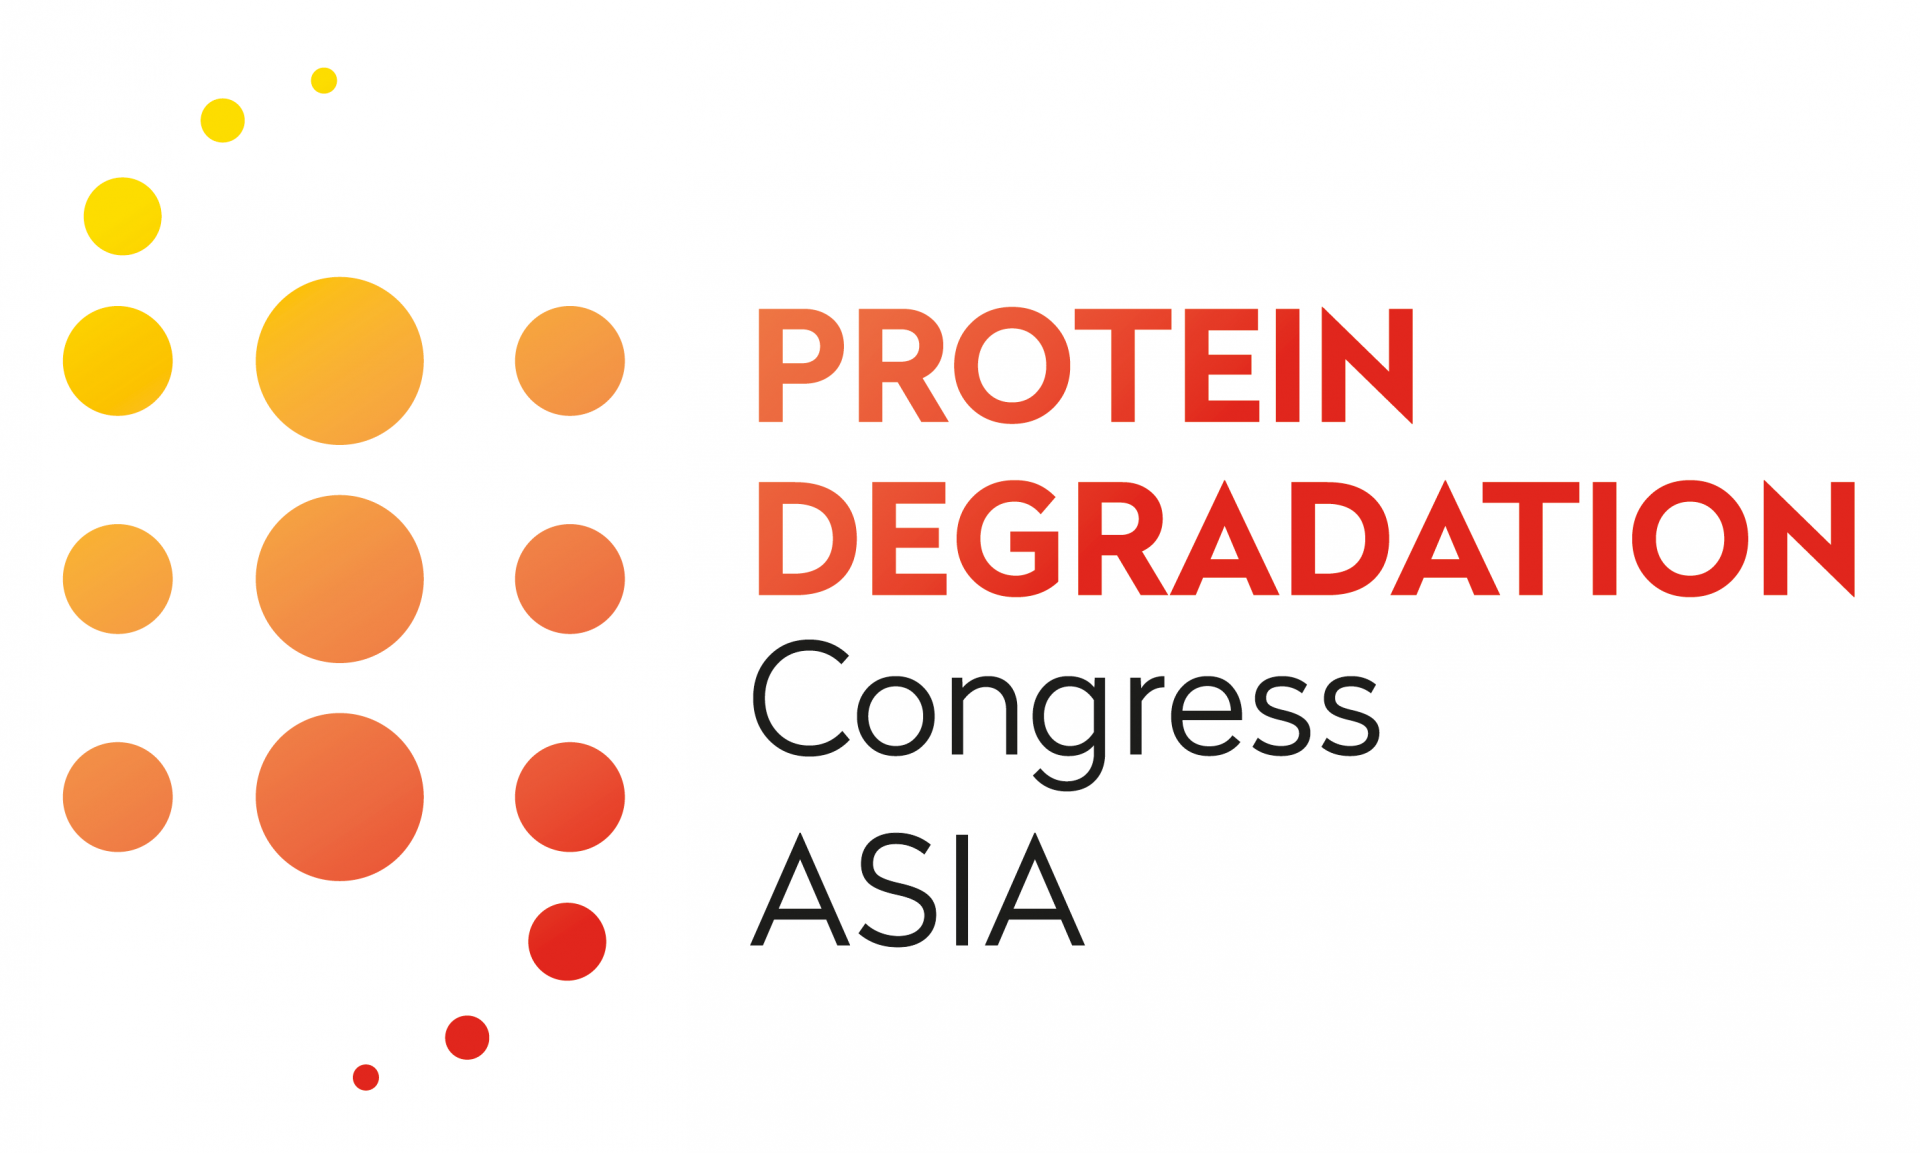 Protein Degradation Congress Asia